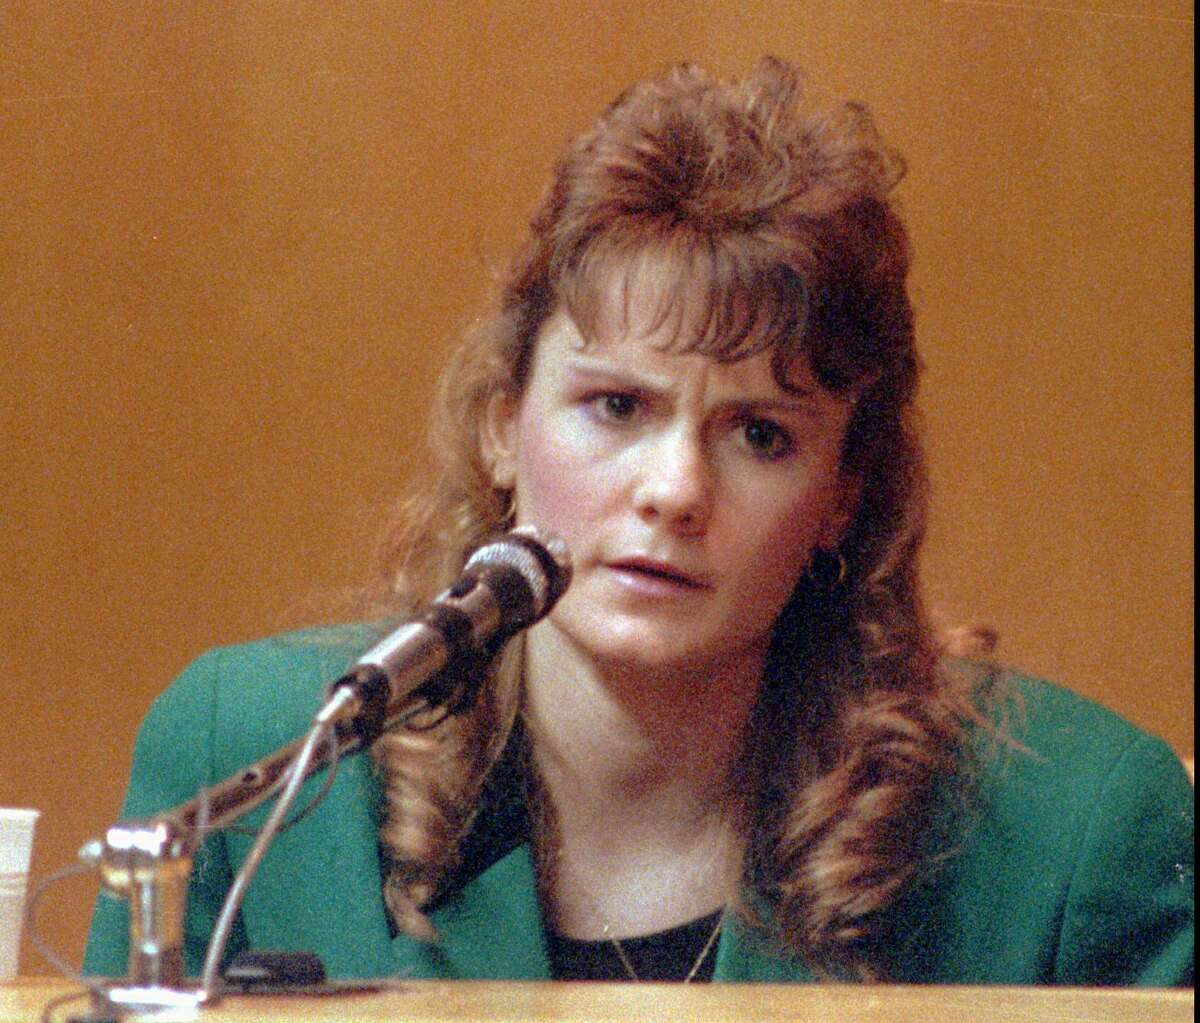 Pamela Smart, convicted for conspiracy to commit murder in the death of her husband and sentenced to life without the possibility of parole, is seen on the witness stand in this 1991 photo from Rockingham County Superior Court in Exeter, N.H. (AP Photo/Jim Cole)